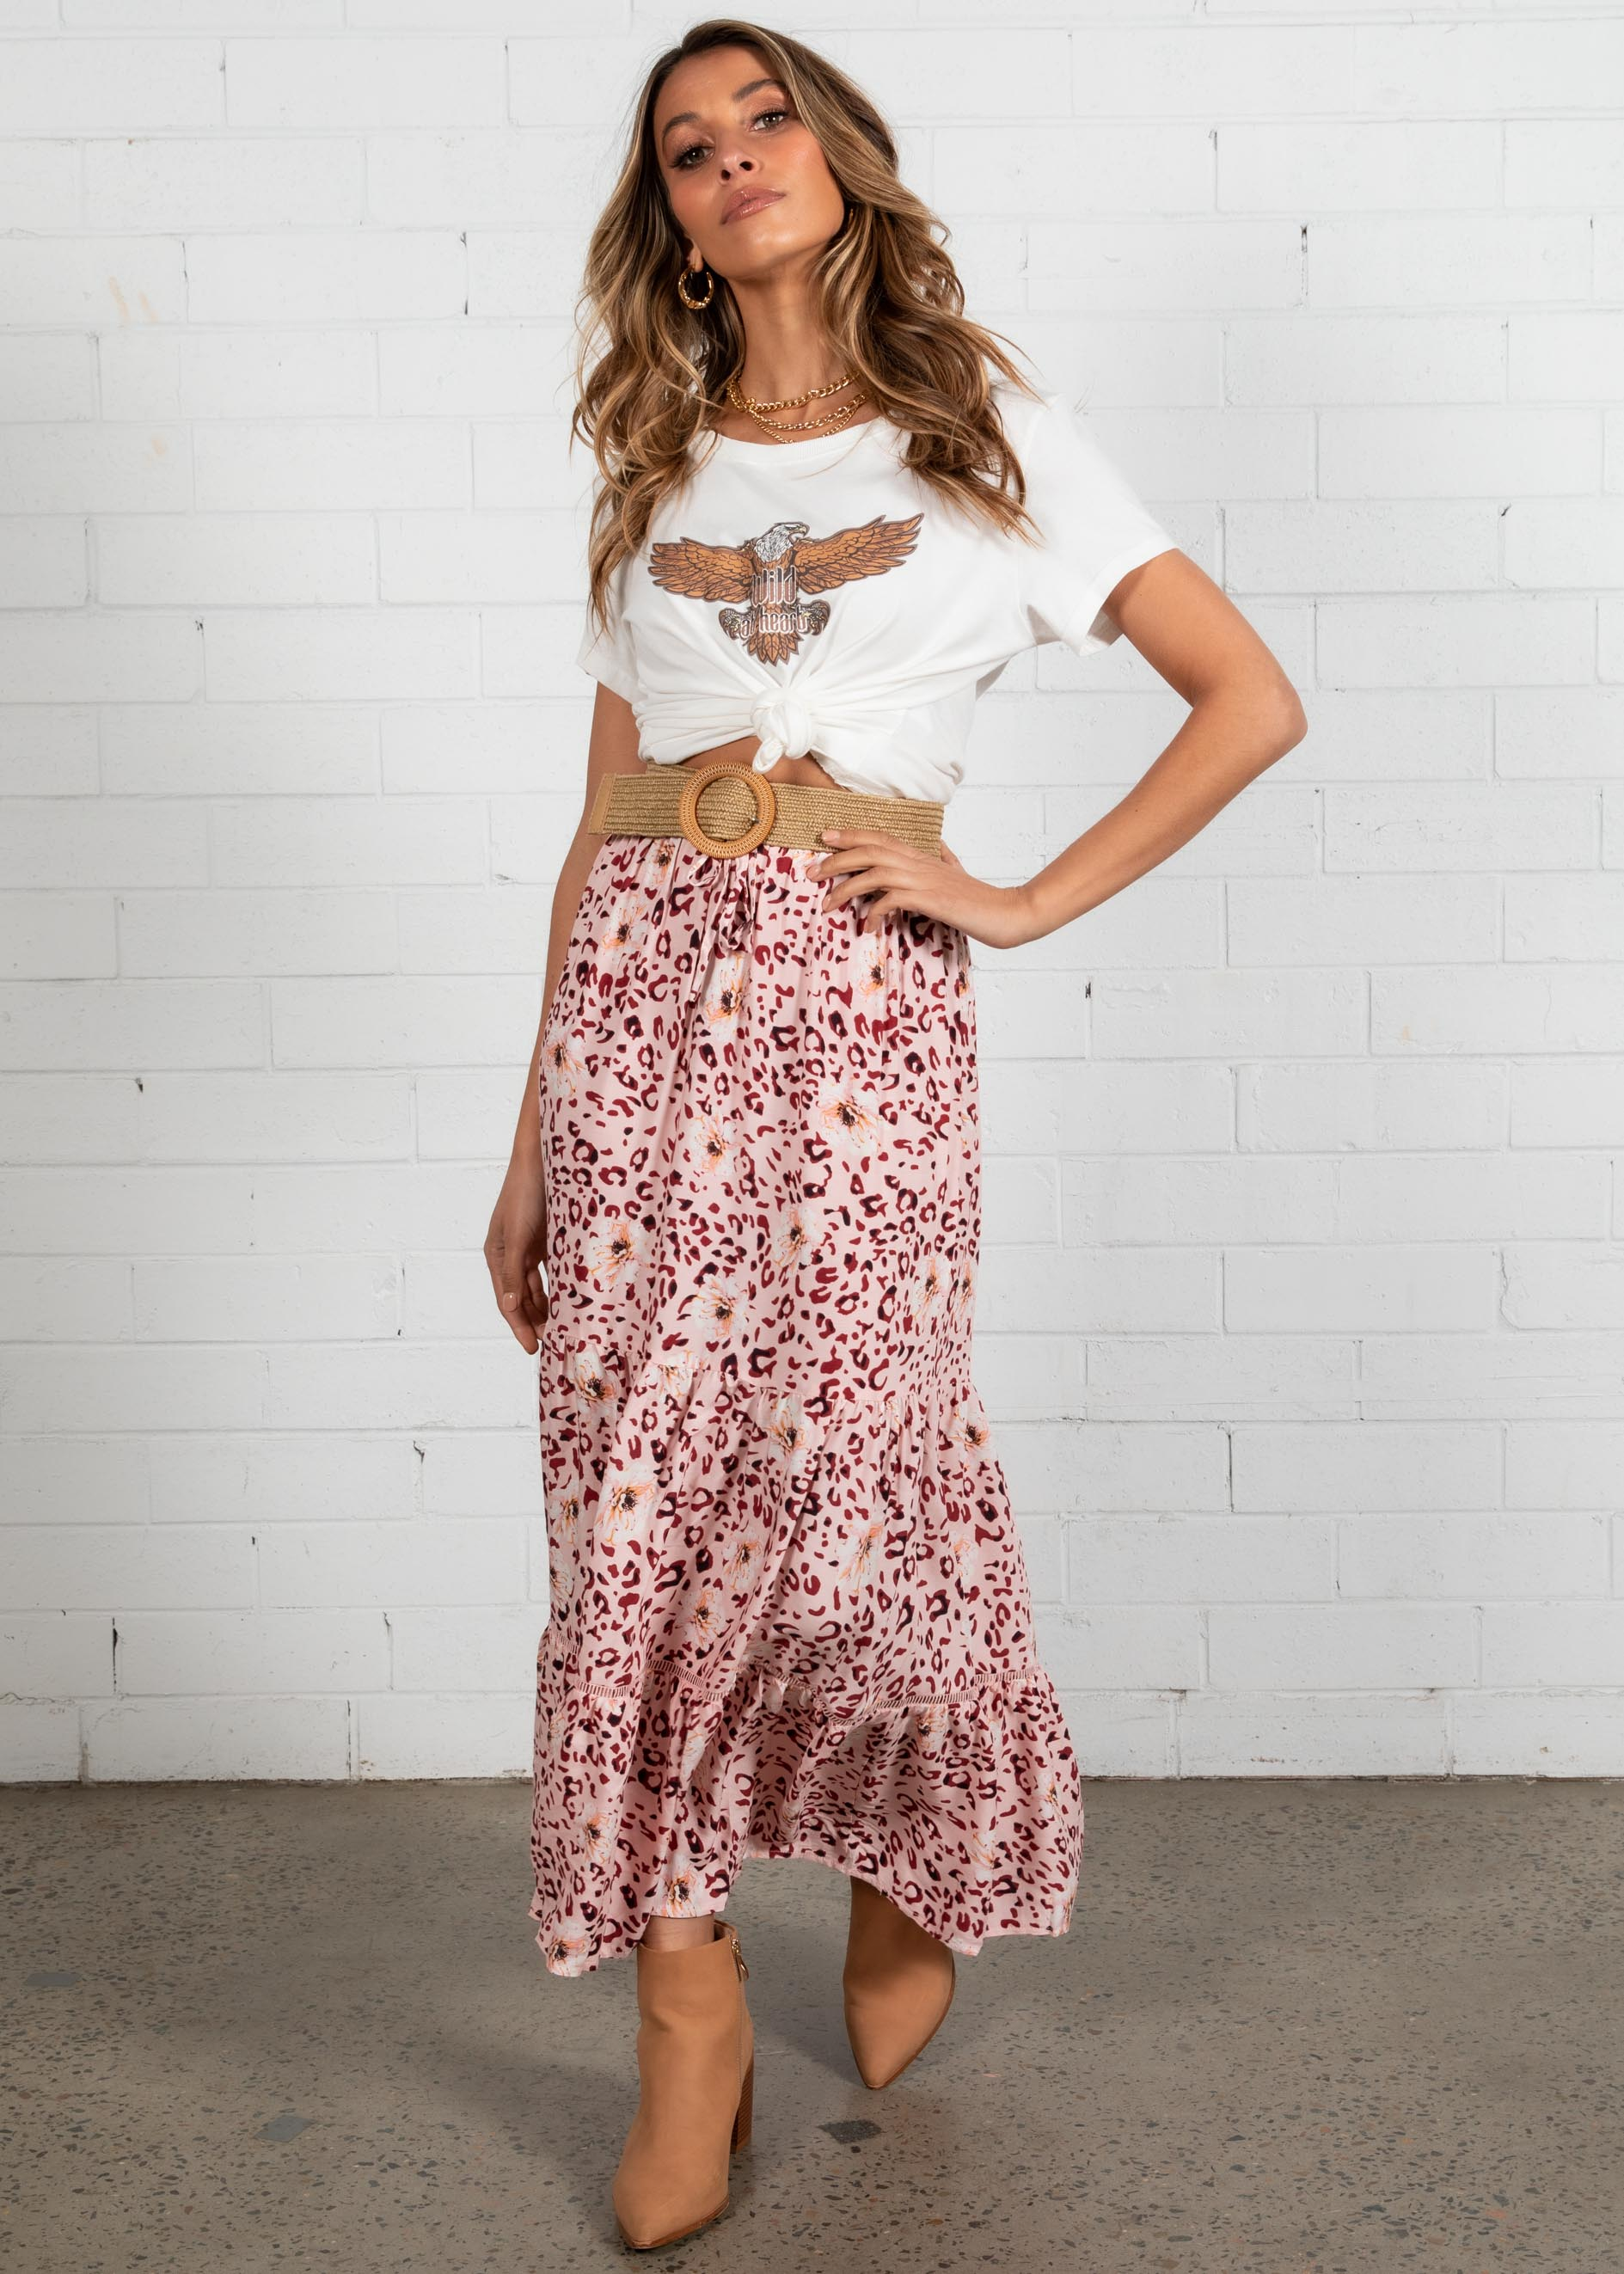 Sunseeker Maxi Skirt - Blush Leopard